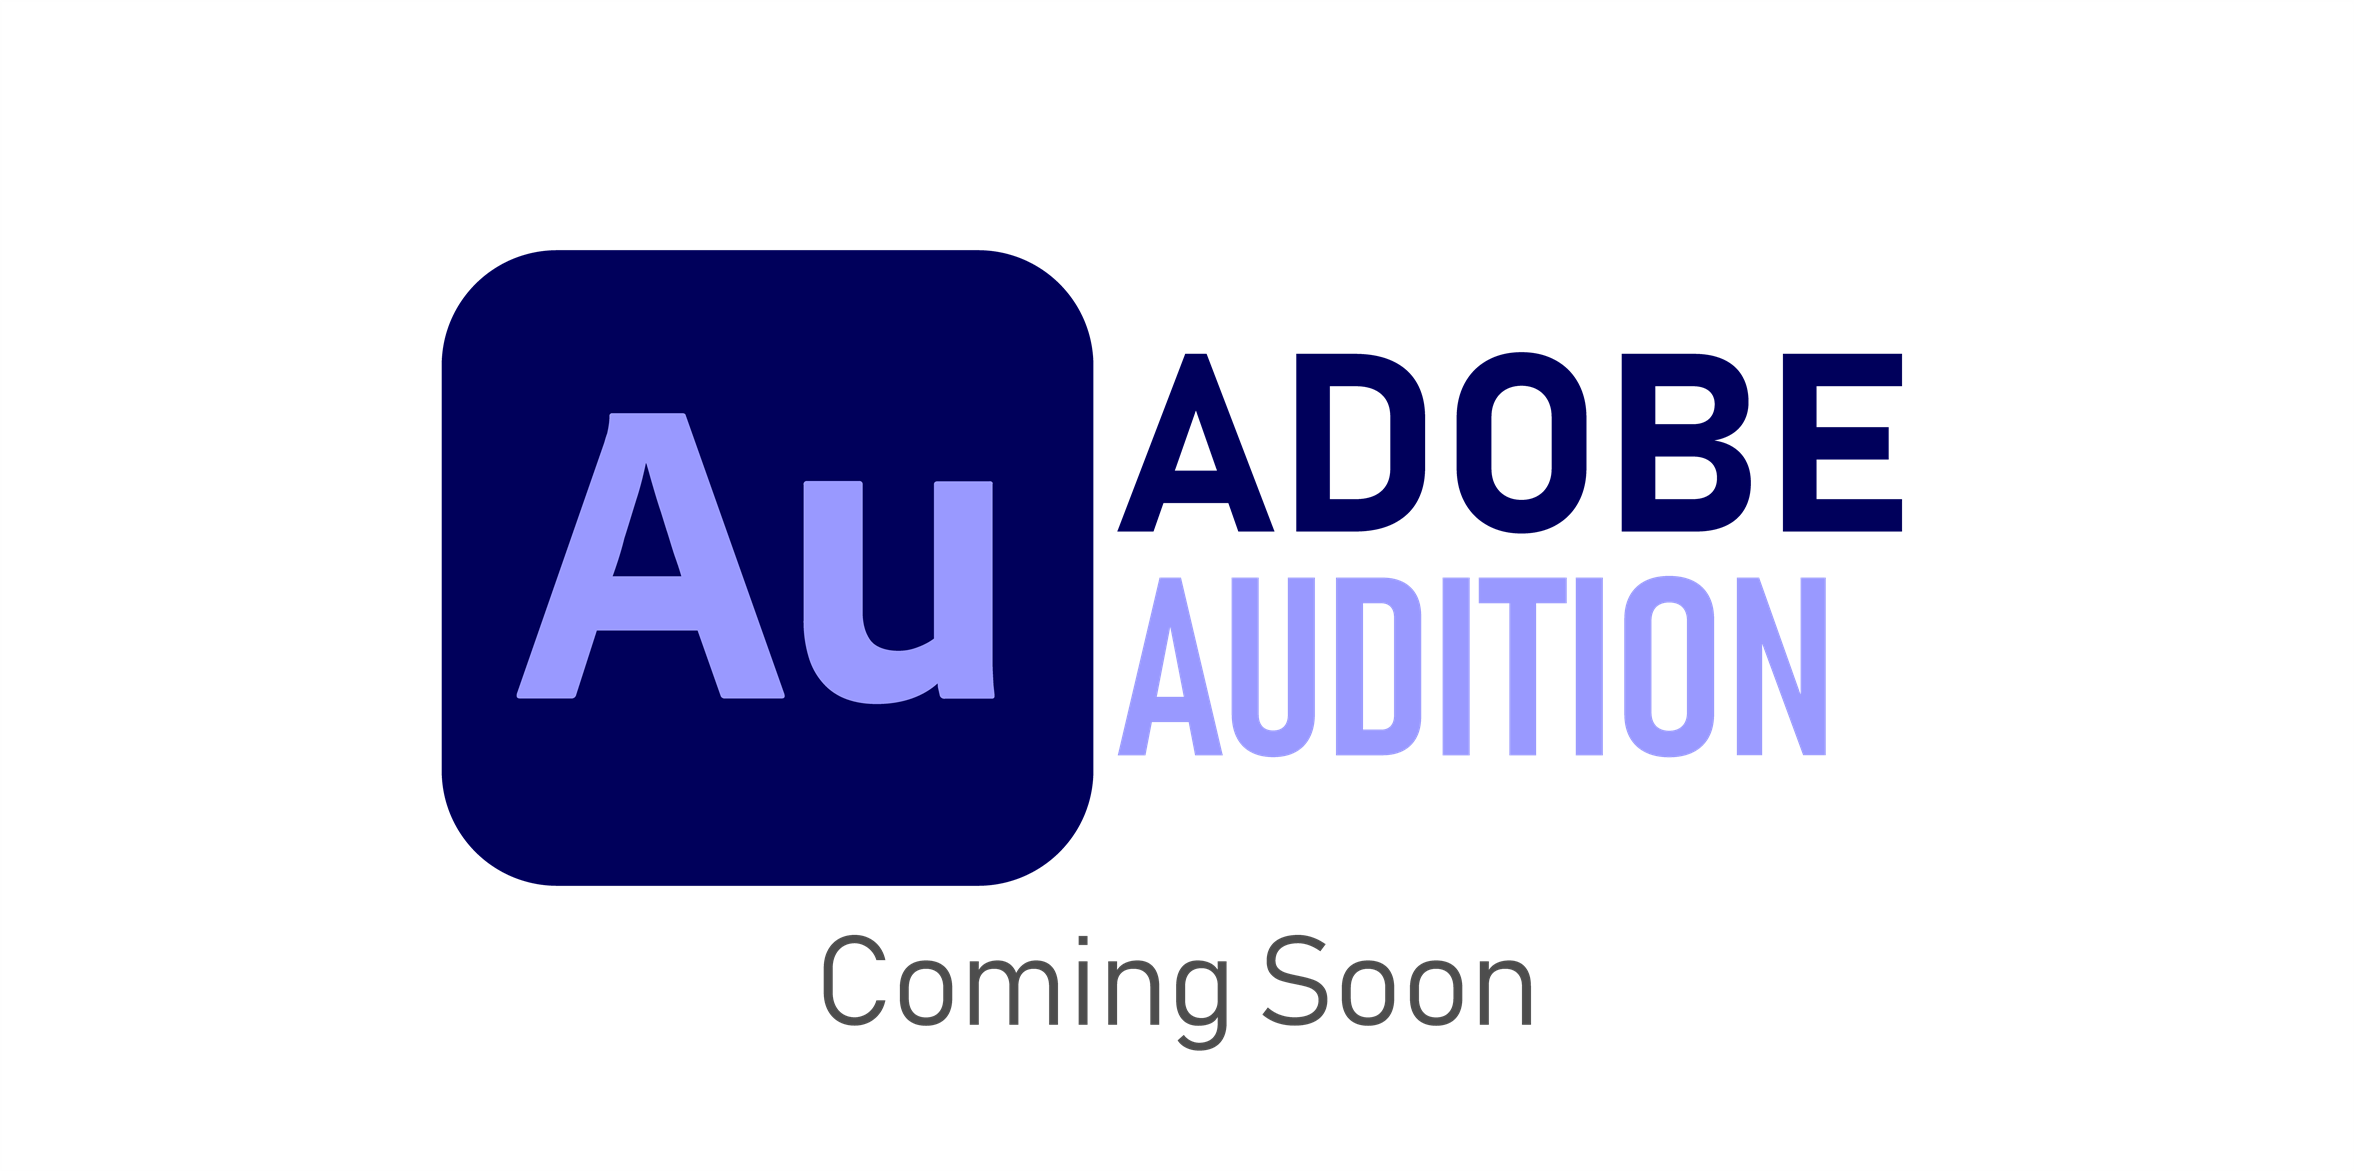 18. Audition